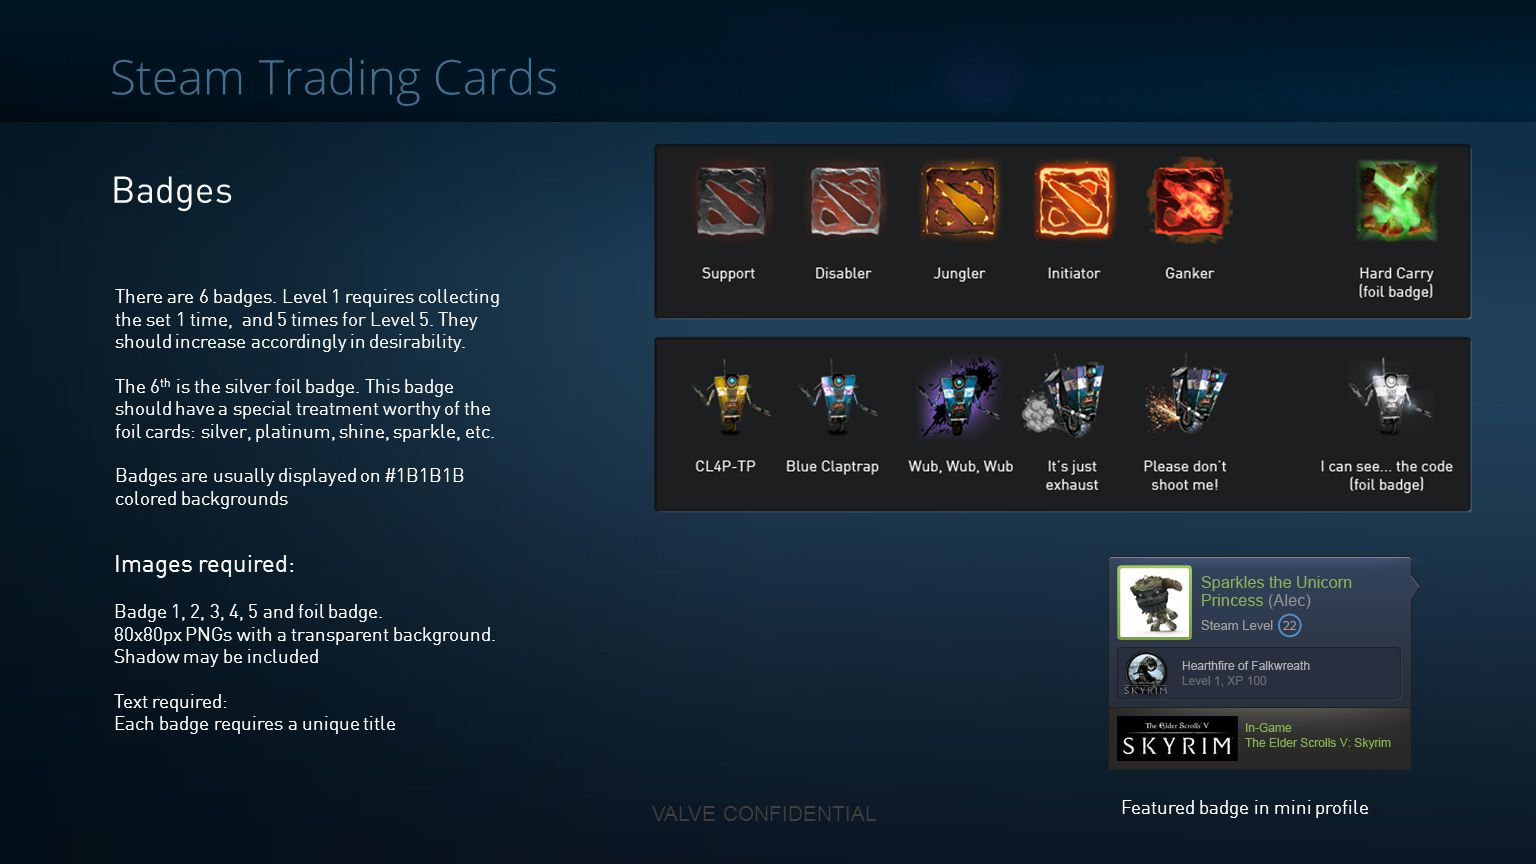 Steam Trading Cards Badges Images required: VALVE CONFIDENTIAL